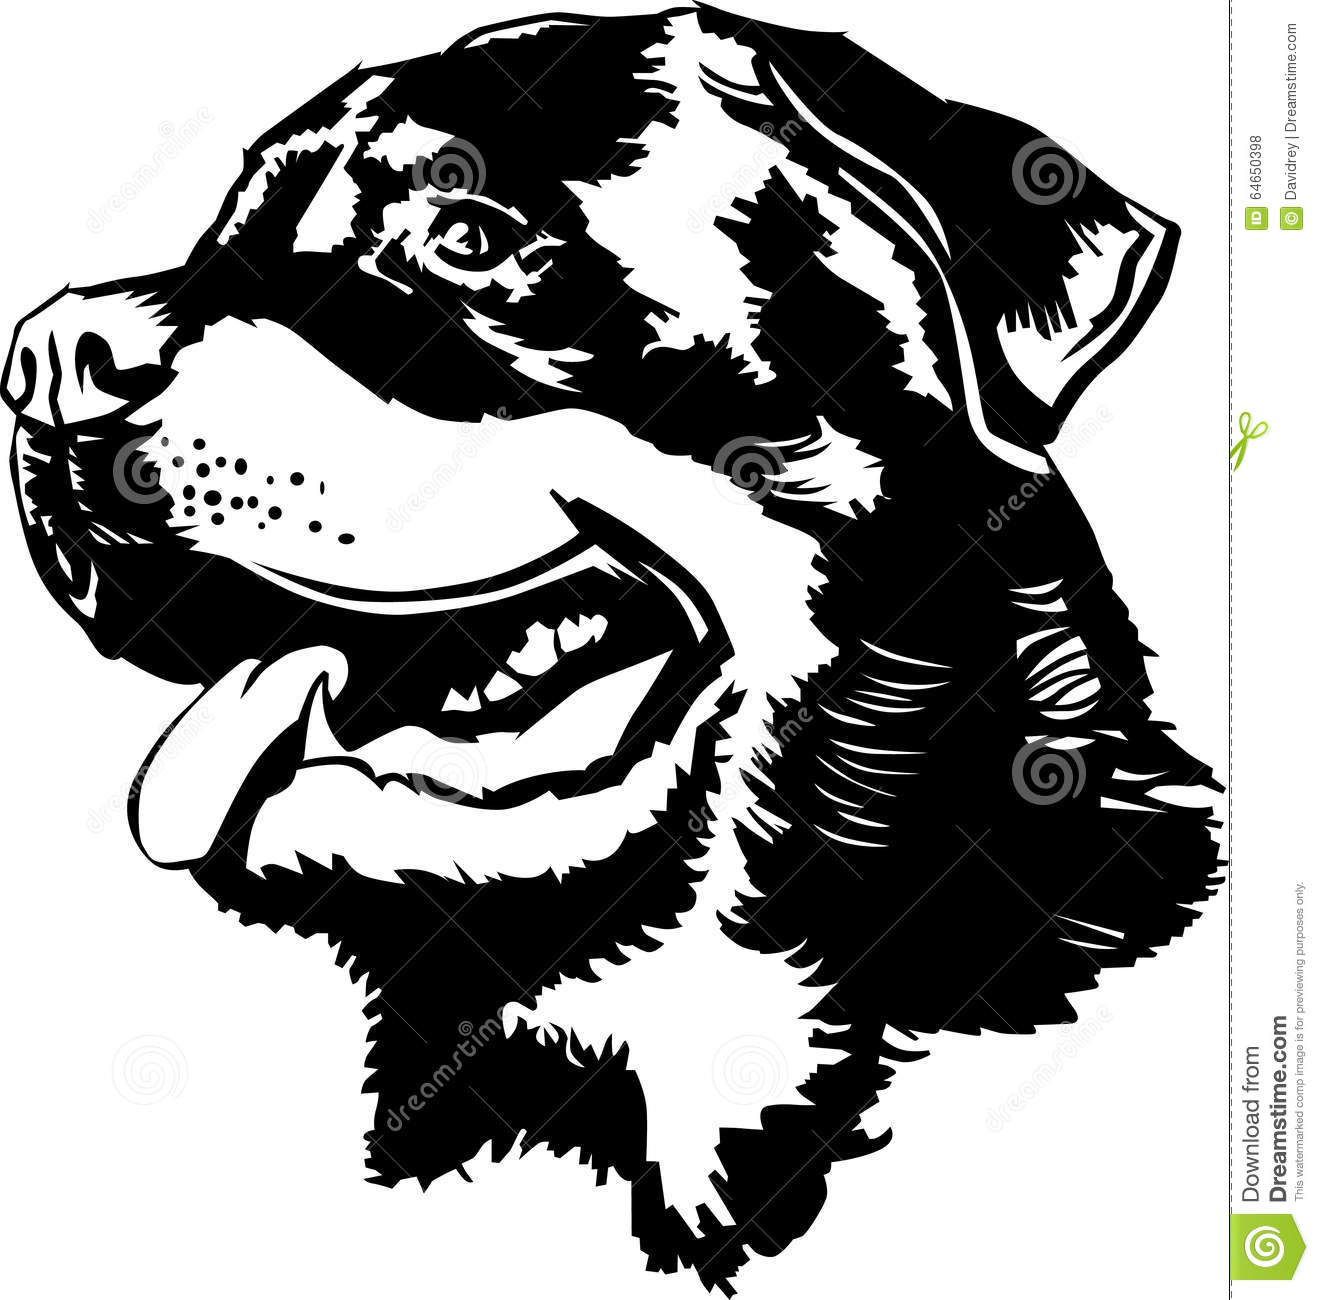 Rottweiler clipart #11, Download drawings